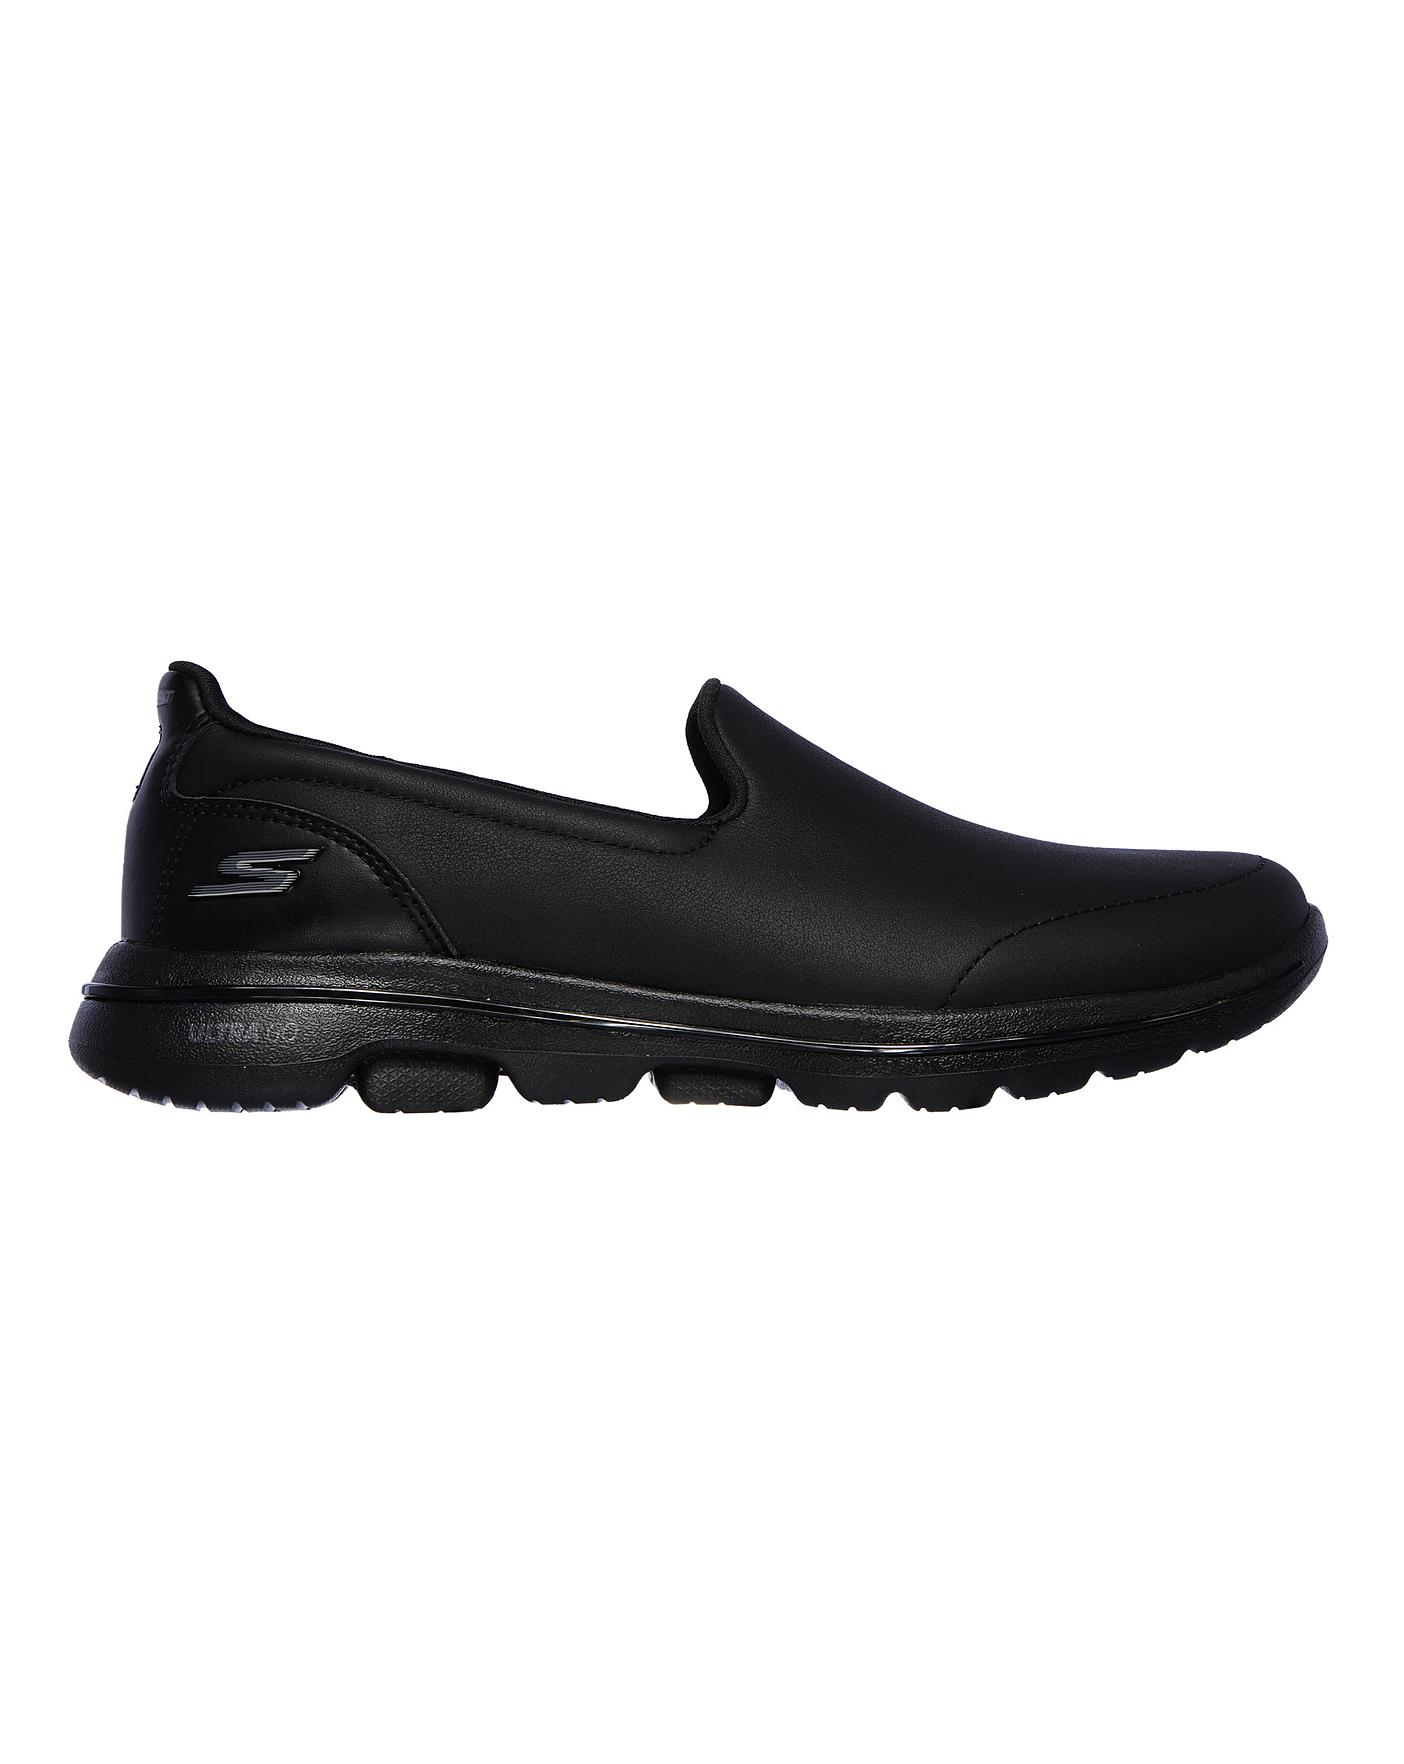 sketcher go walk shoes